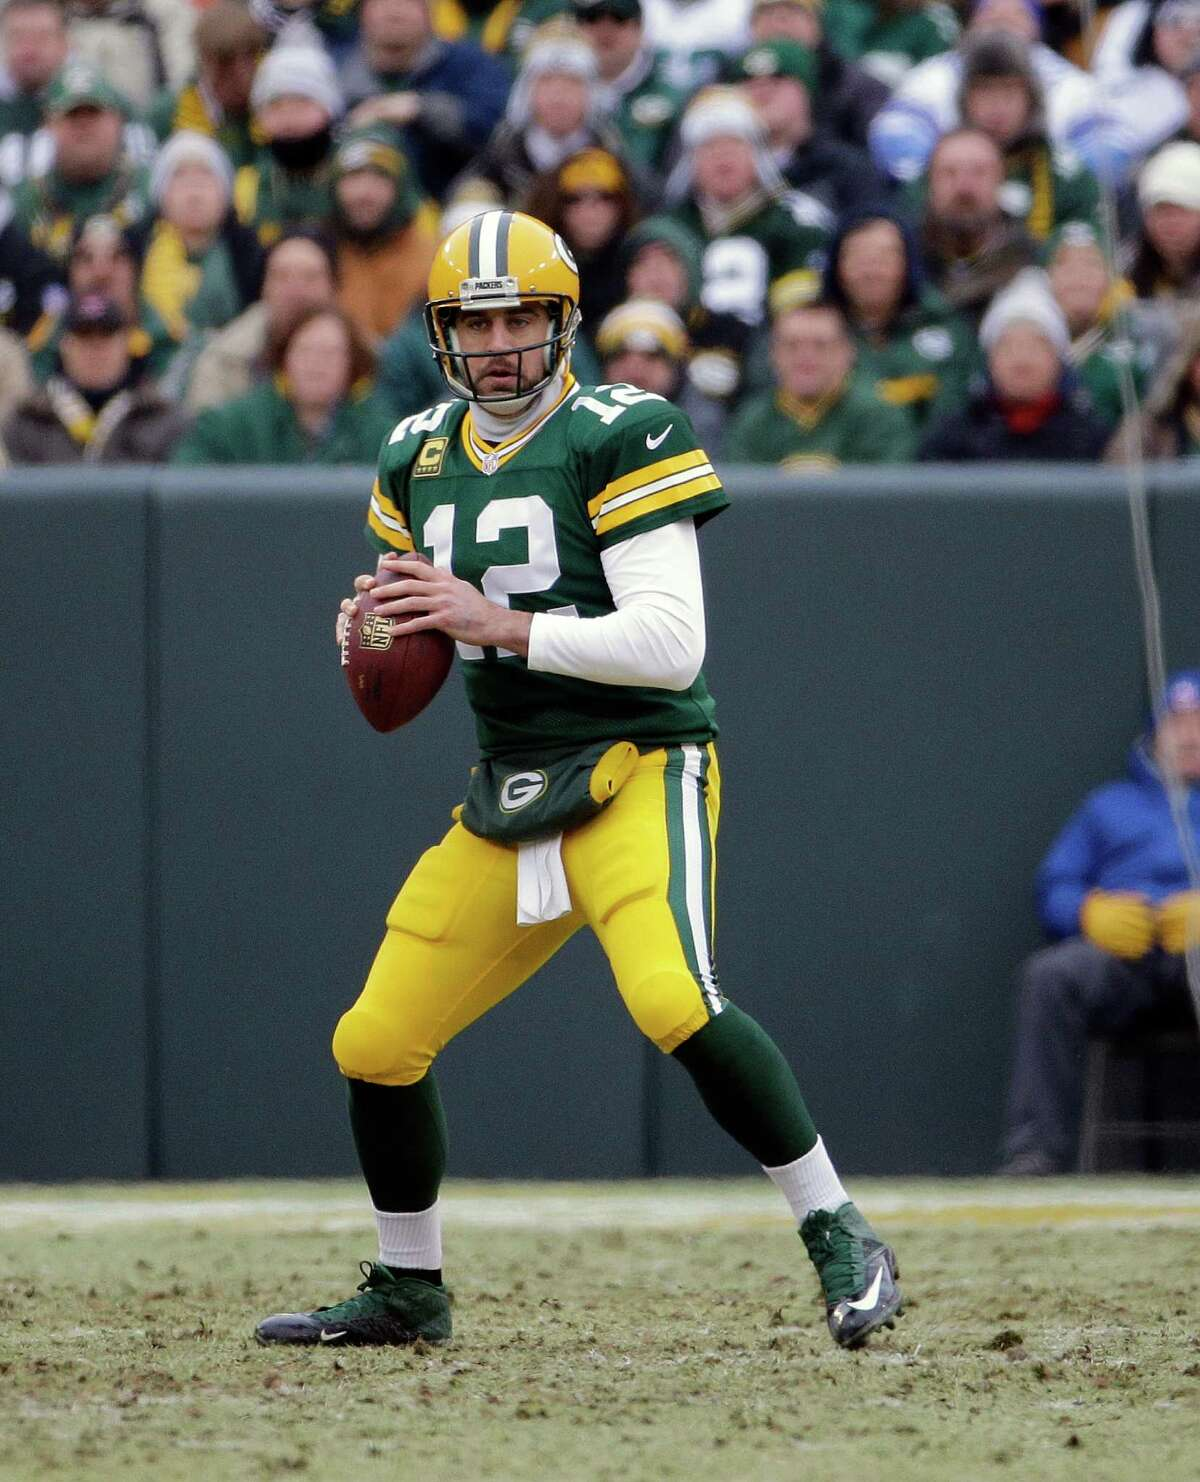 Green Bay Packers quarterback Aaron Rodgers (12) looks for an open receiver during the first half of an NFL divisional playoff football game against the Dallas Cowboys Sunday, Jan. 11, 2015, in Green Bay, Wis. (AP Photo/Nam Y. Huh)